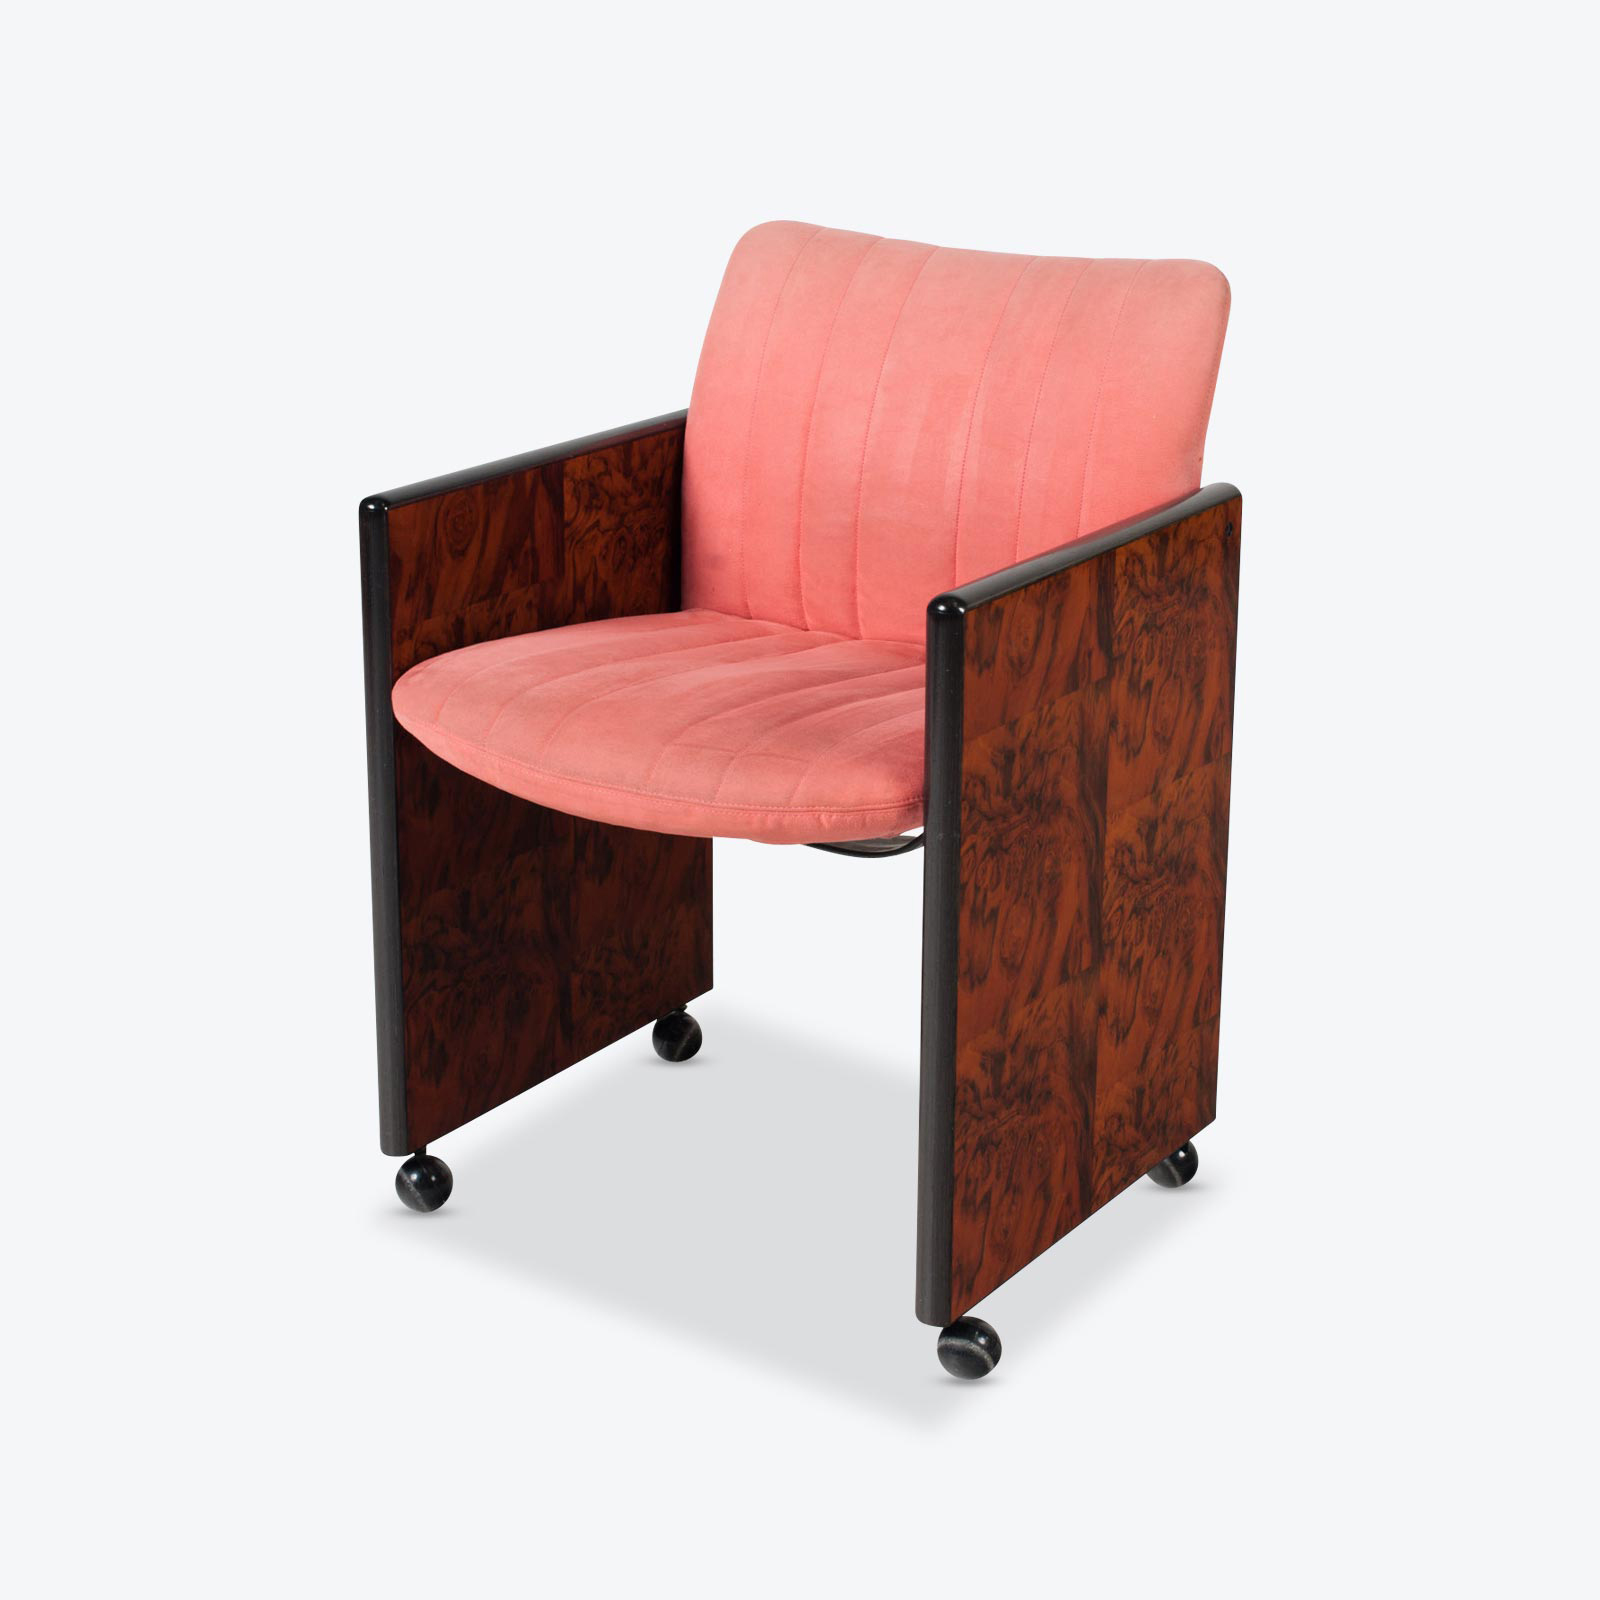 Set Of 8 Chairs By Kazuhide Takahama In Pink Upholstery 1950s Italy 00